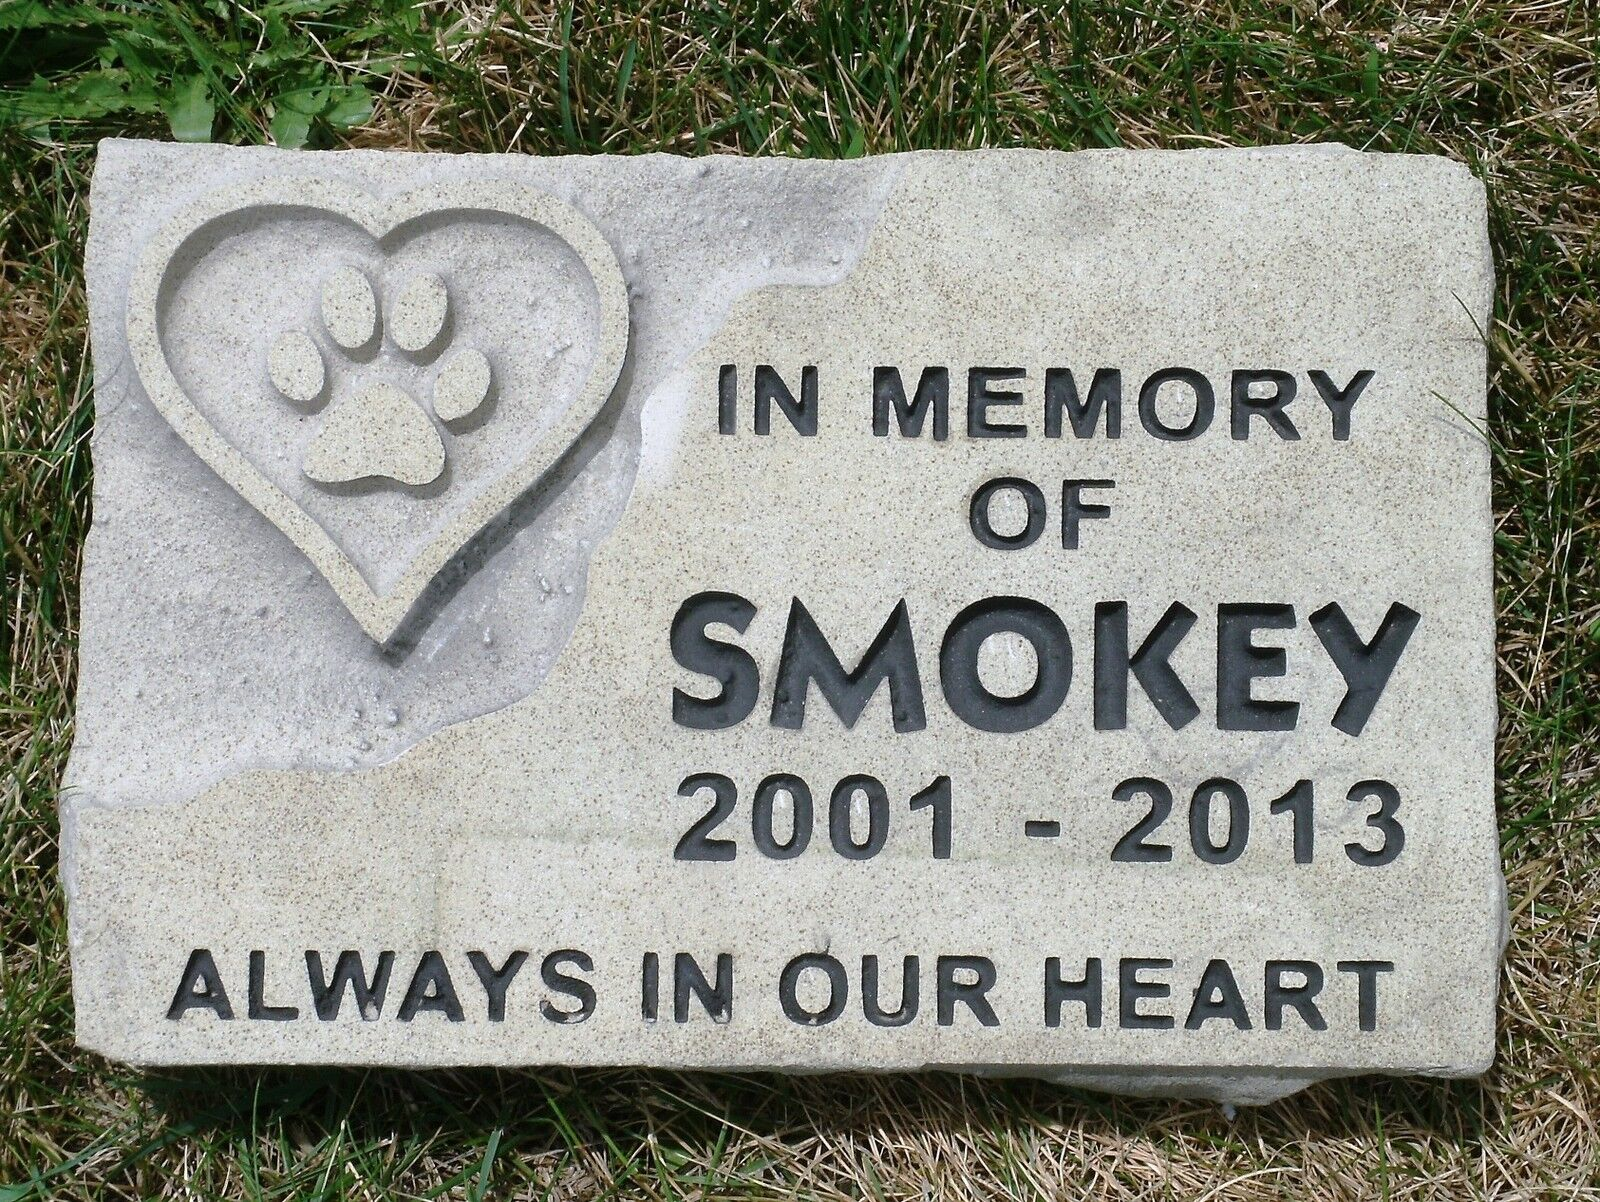 Nuova lista Personalized Personalized Personalized pet memorial 12 x 8  custom engraved limestone free shipping  outlet in vendita